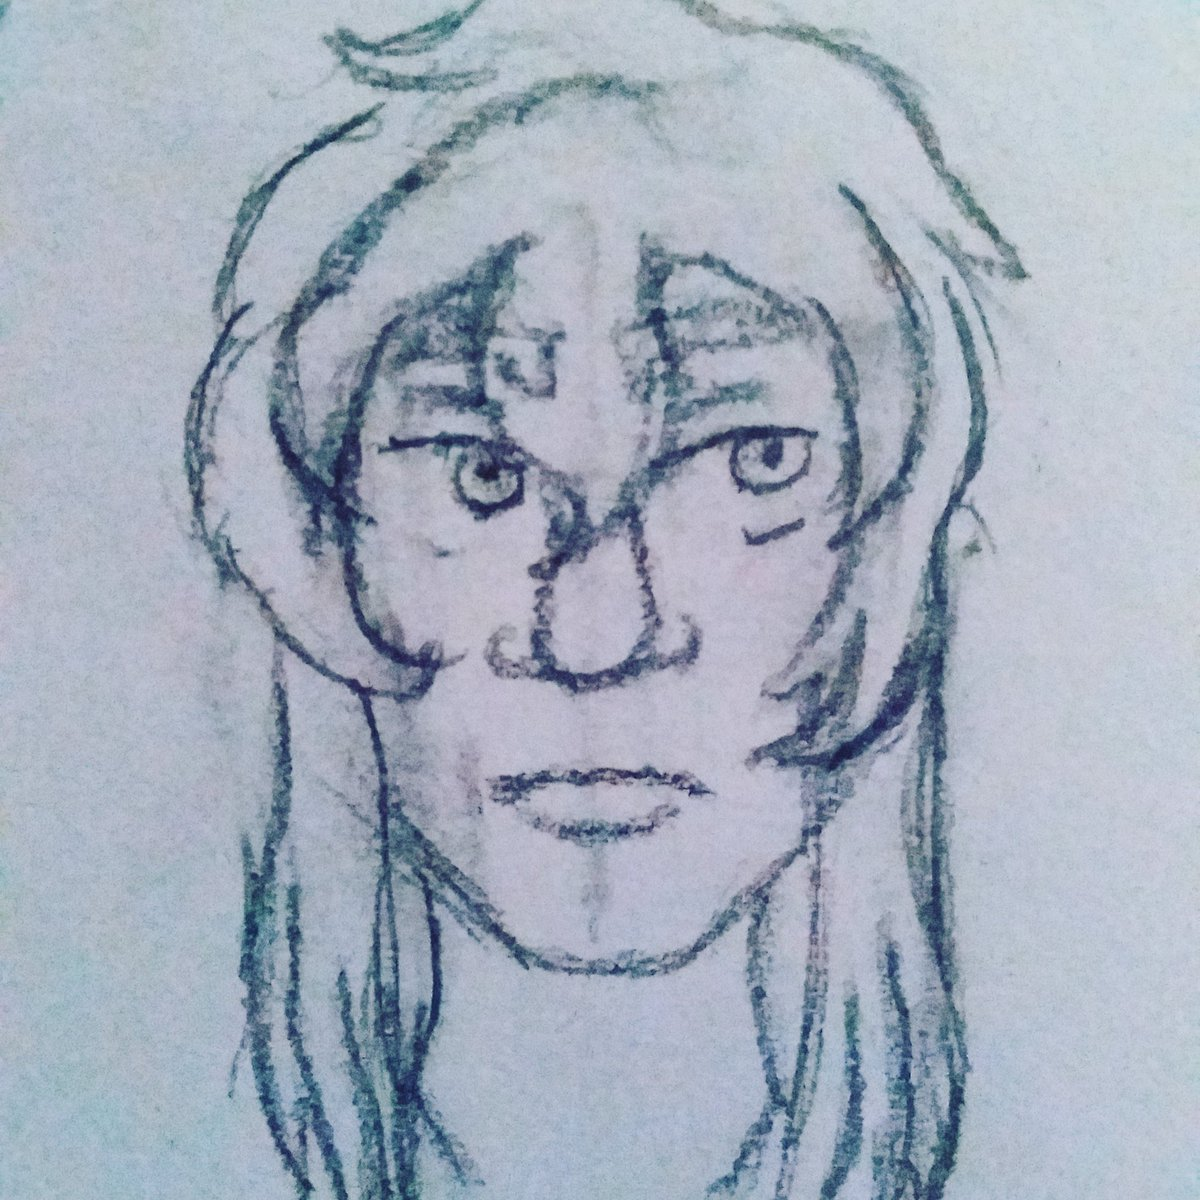 Mmmm look at this handsome boi  -pats Lawrence's head- UwU  #OC #originalcharacter #character #portrait #drawing #ocdrawing #ocportraits #sketch #sketchbookdrawing #sketchbook #draw #drawingoftheday #dailydrawing #traditionalart #ric3_OC